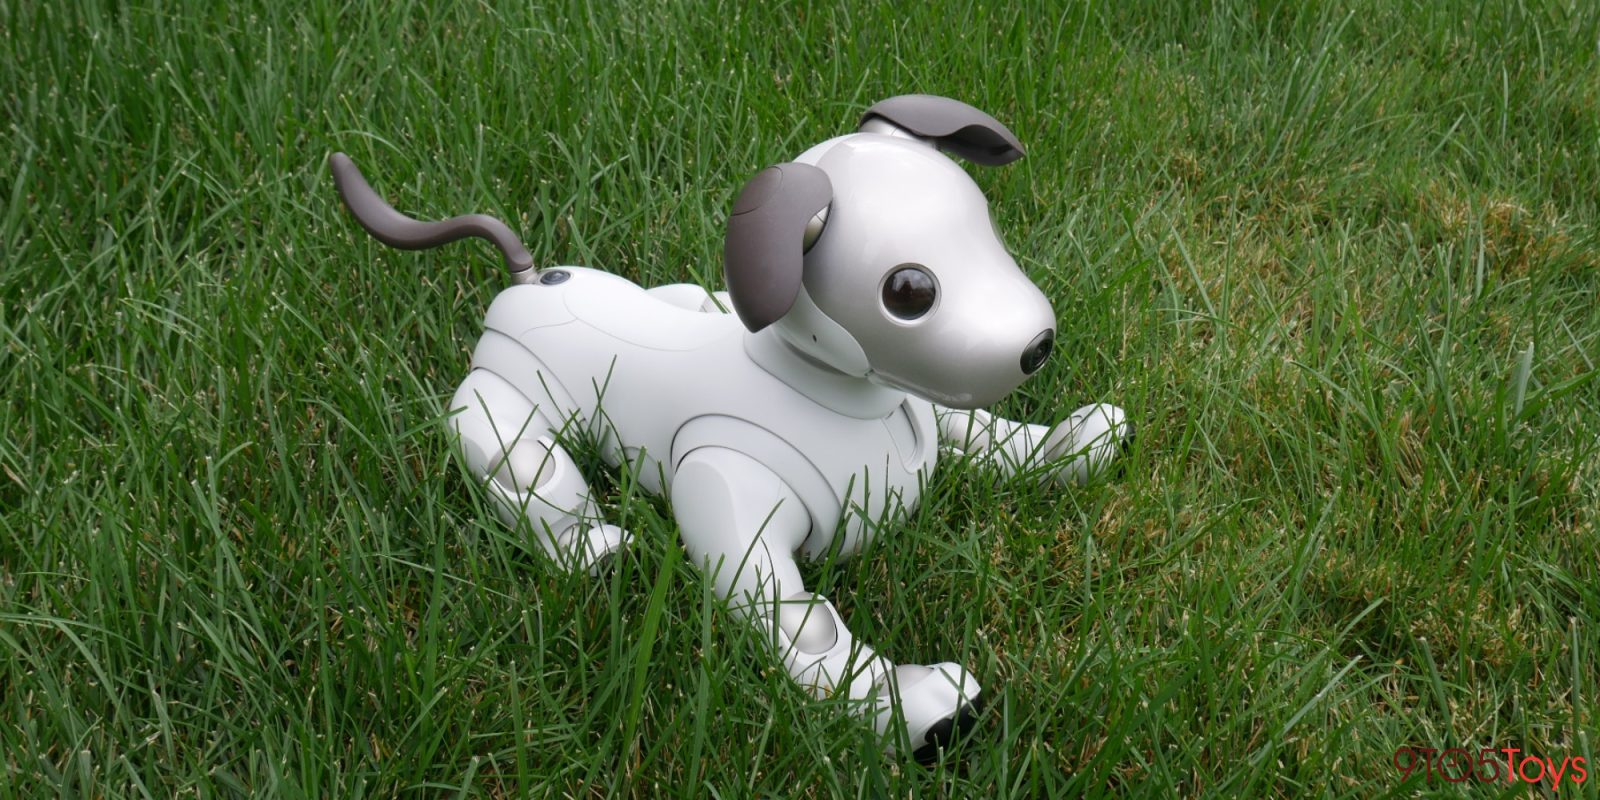 Hands-on with Sony aibo: A glimpse into the future of robotic companions